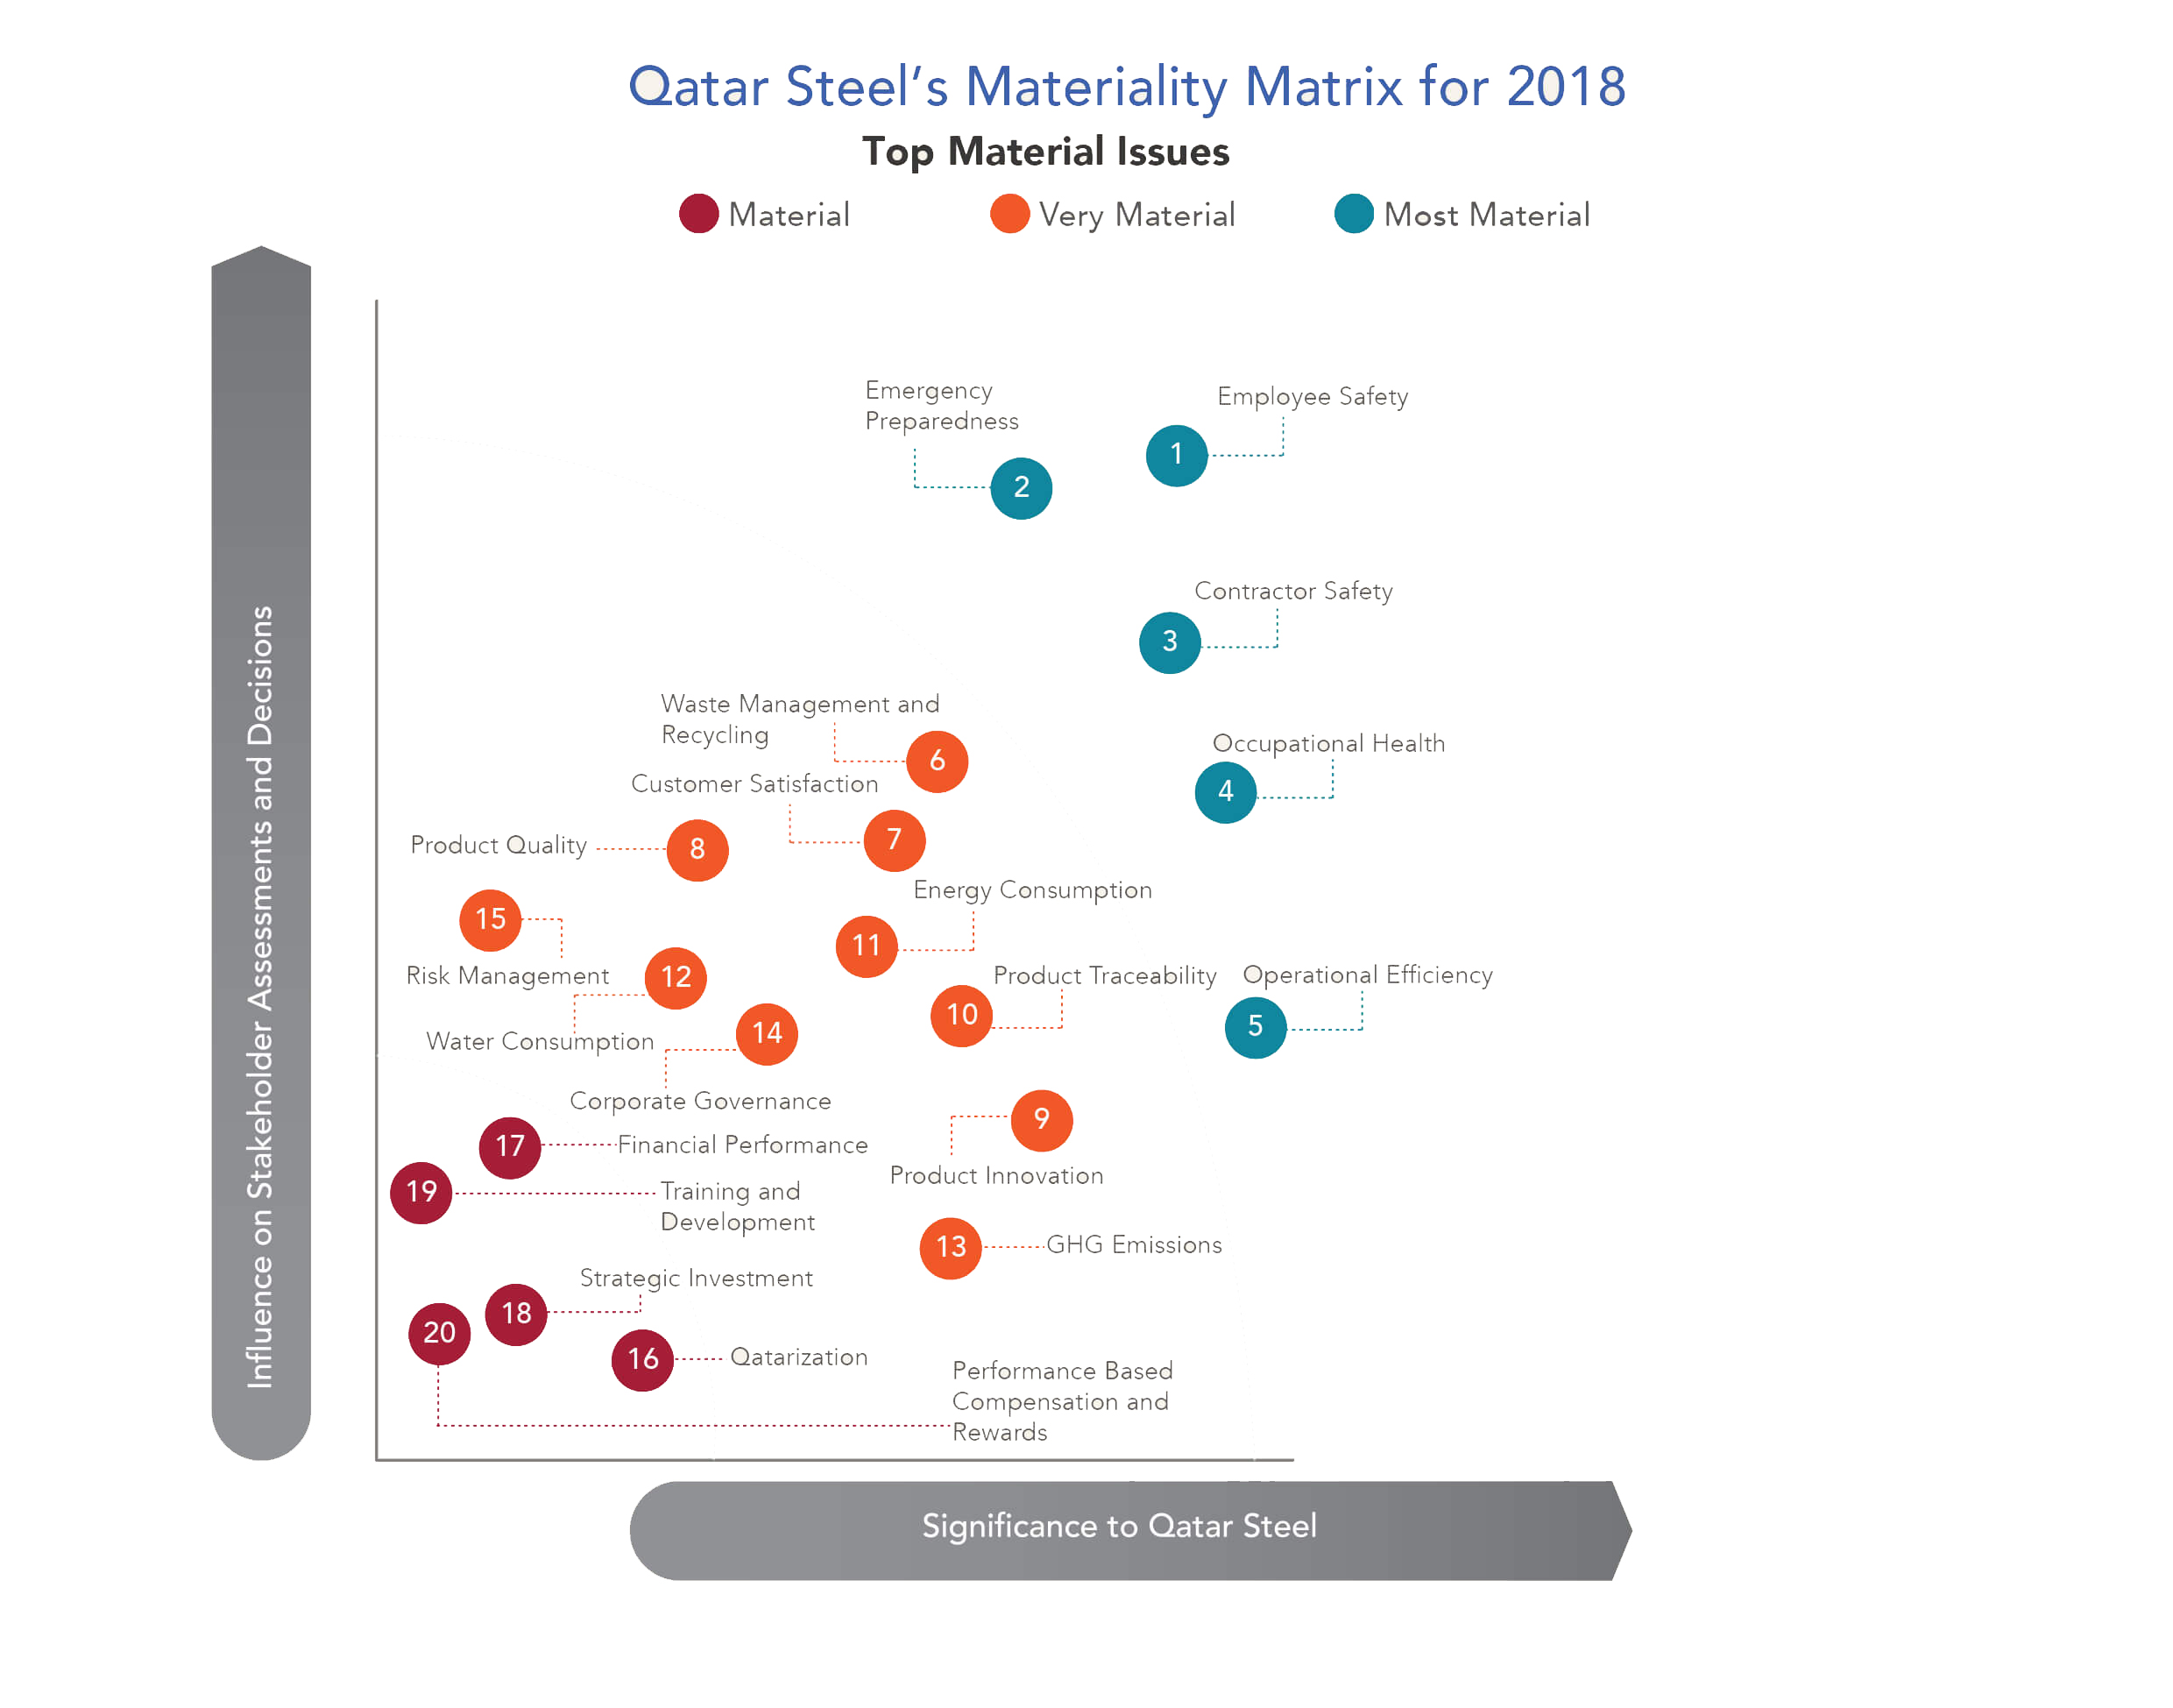 Qatar Steel's Materiality Matrix